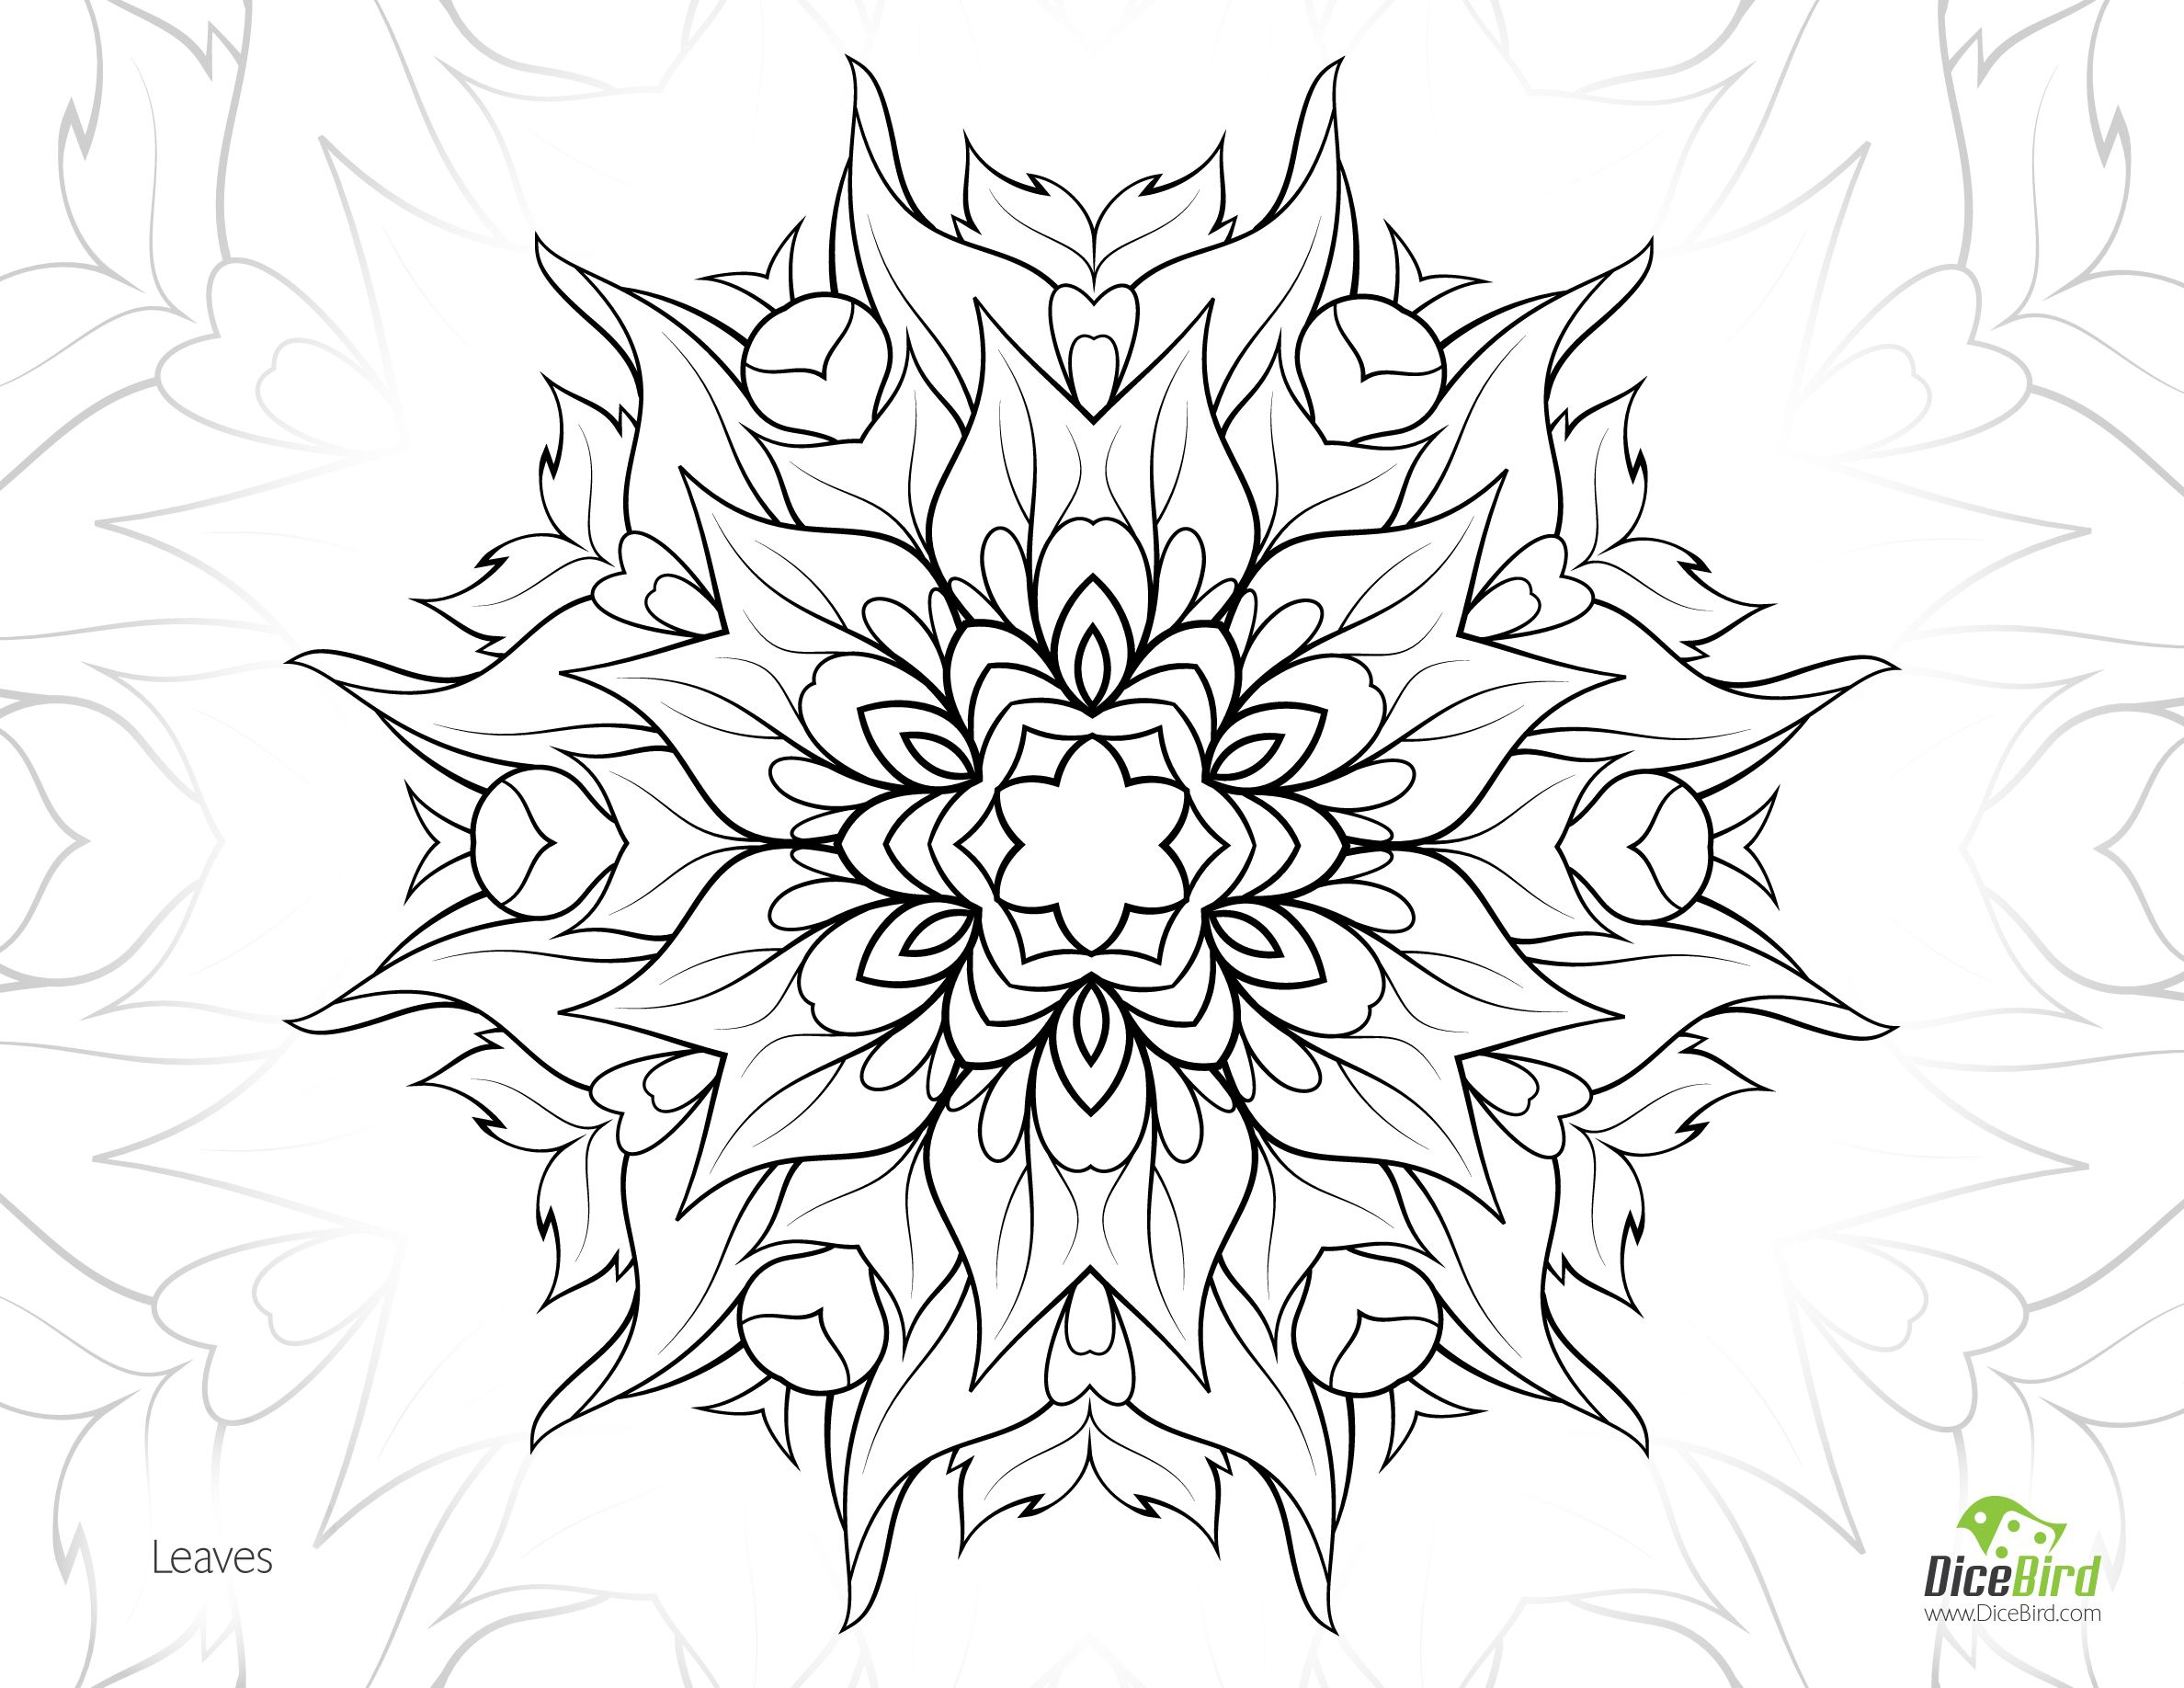 patterns - Stress Coloring